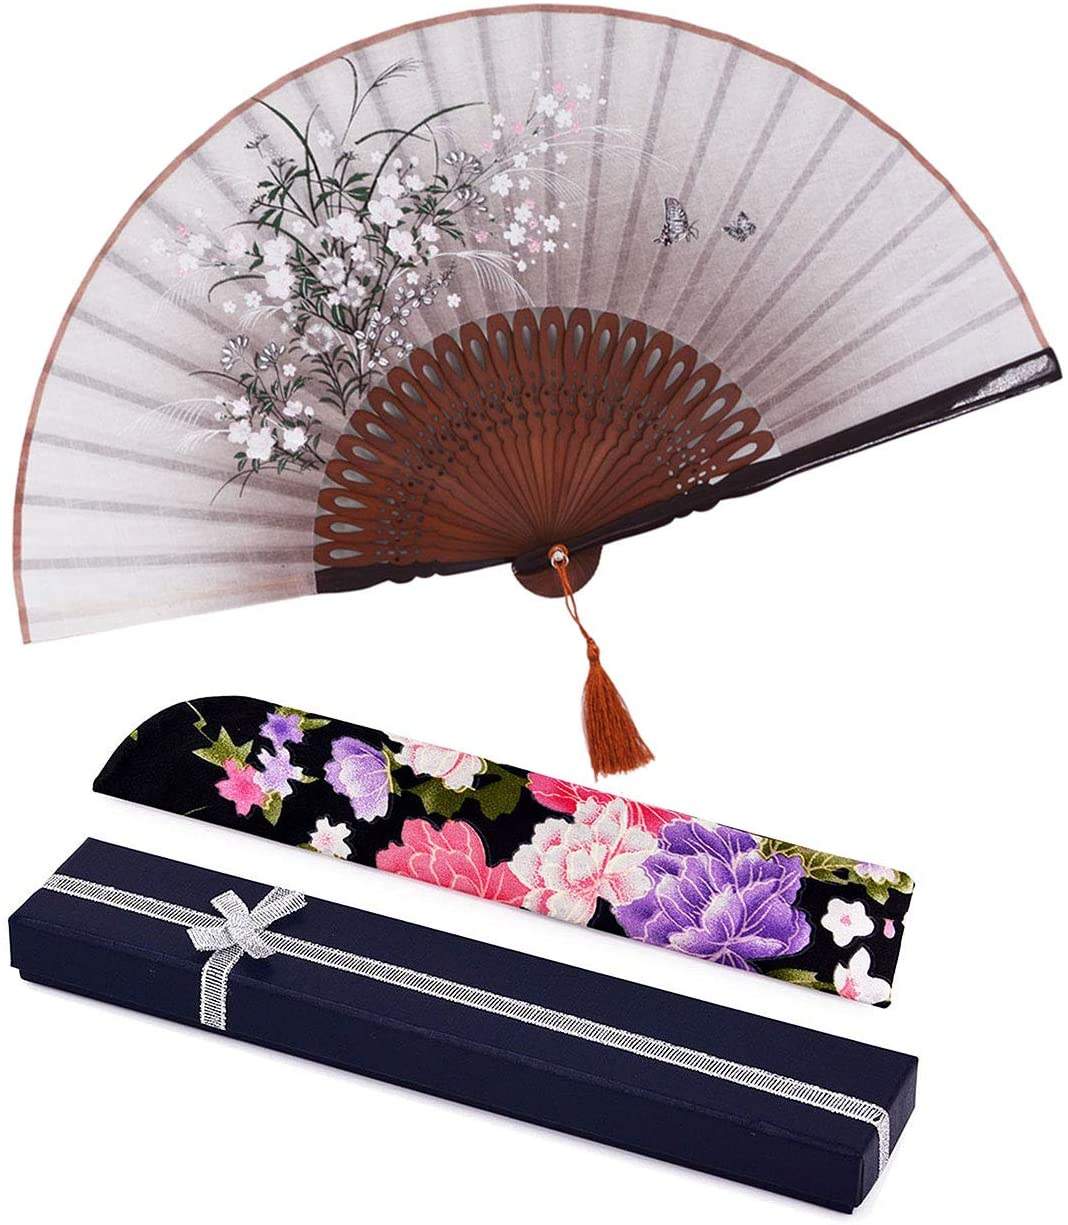 Amajiji Folding Fan, 8.27(21cm) Women Hand Held Silk Folding Fans with Bamboo Frame, Hollow Carve Patterns Bamboo Frame Women Hand Folding Fans Gift Fan Craft Fan (Brown with Gift Box)